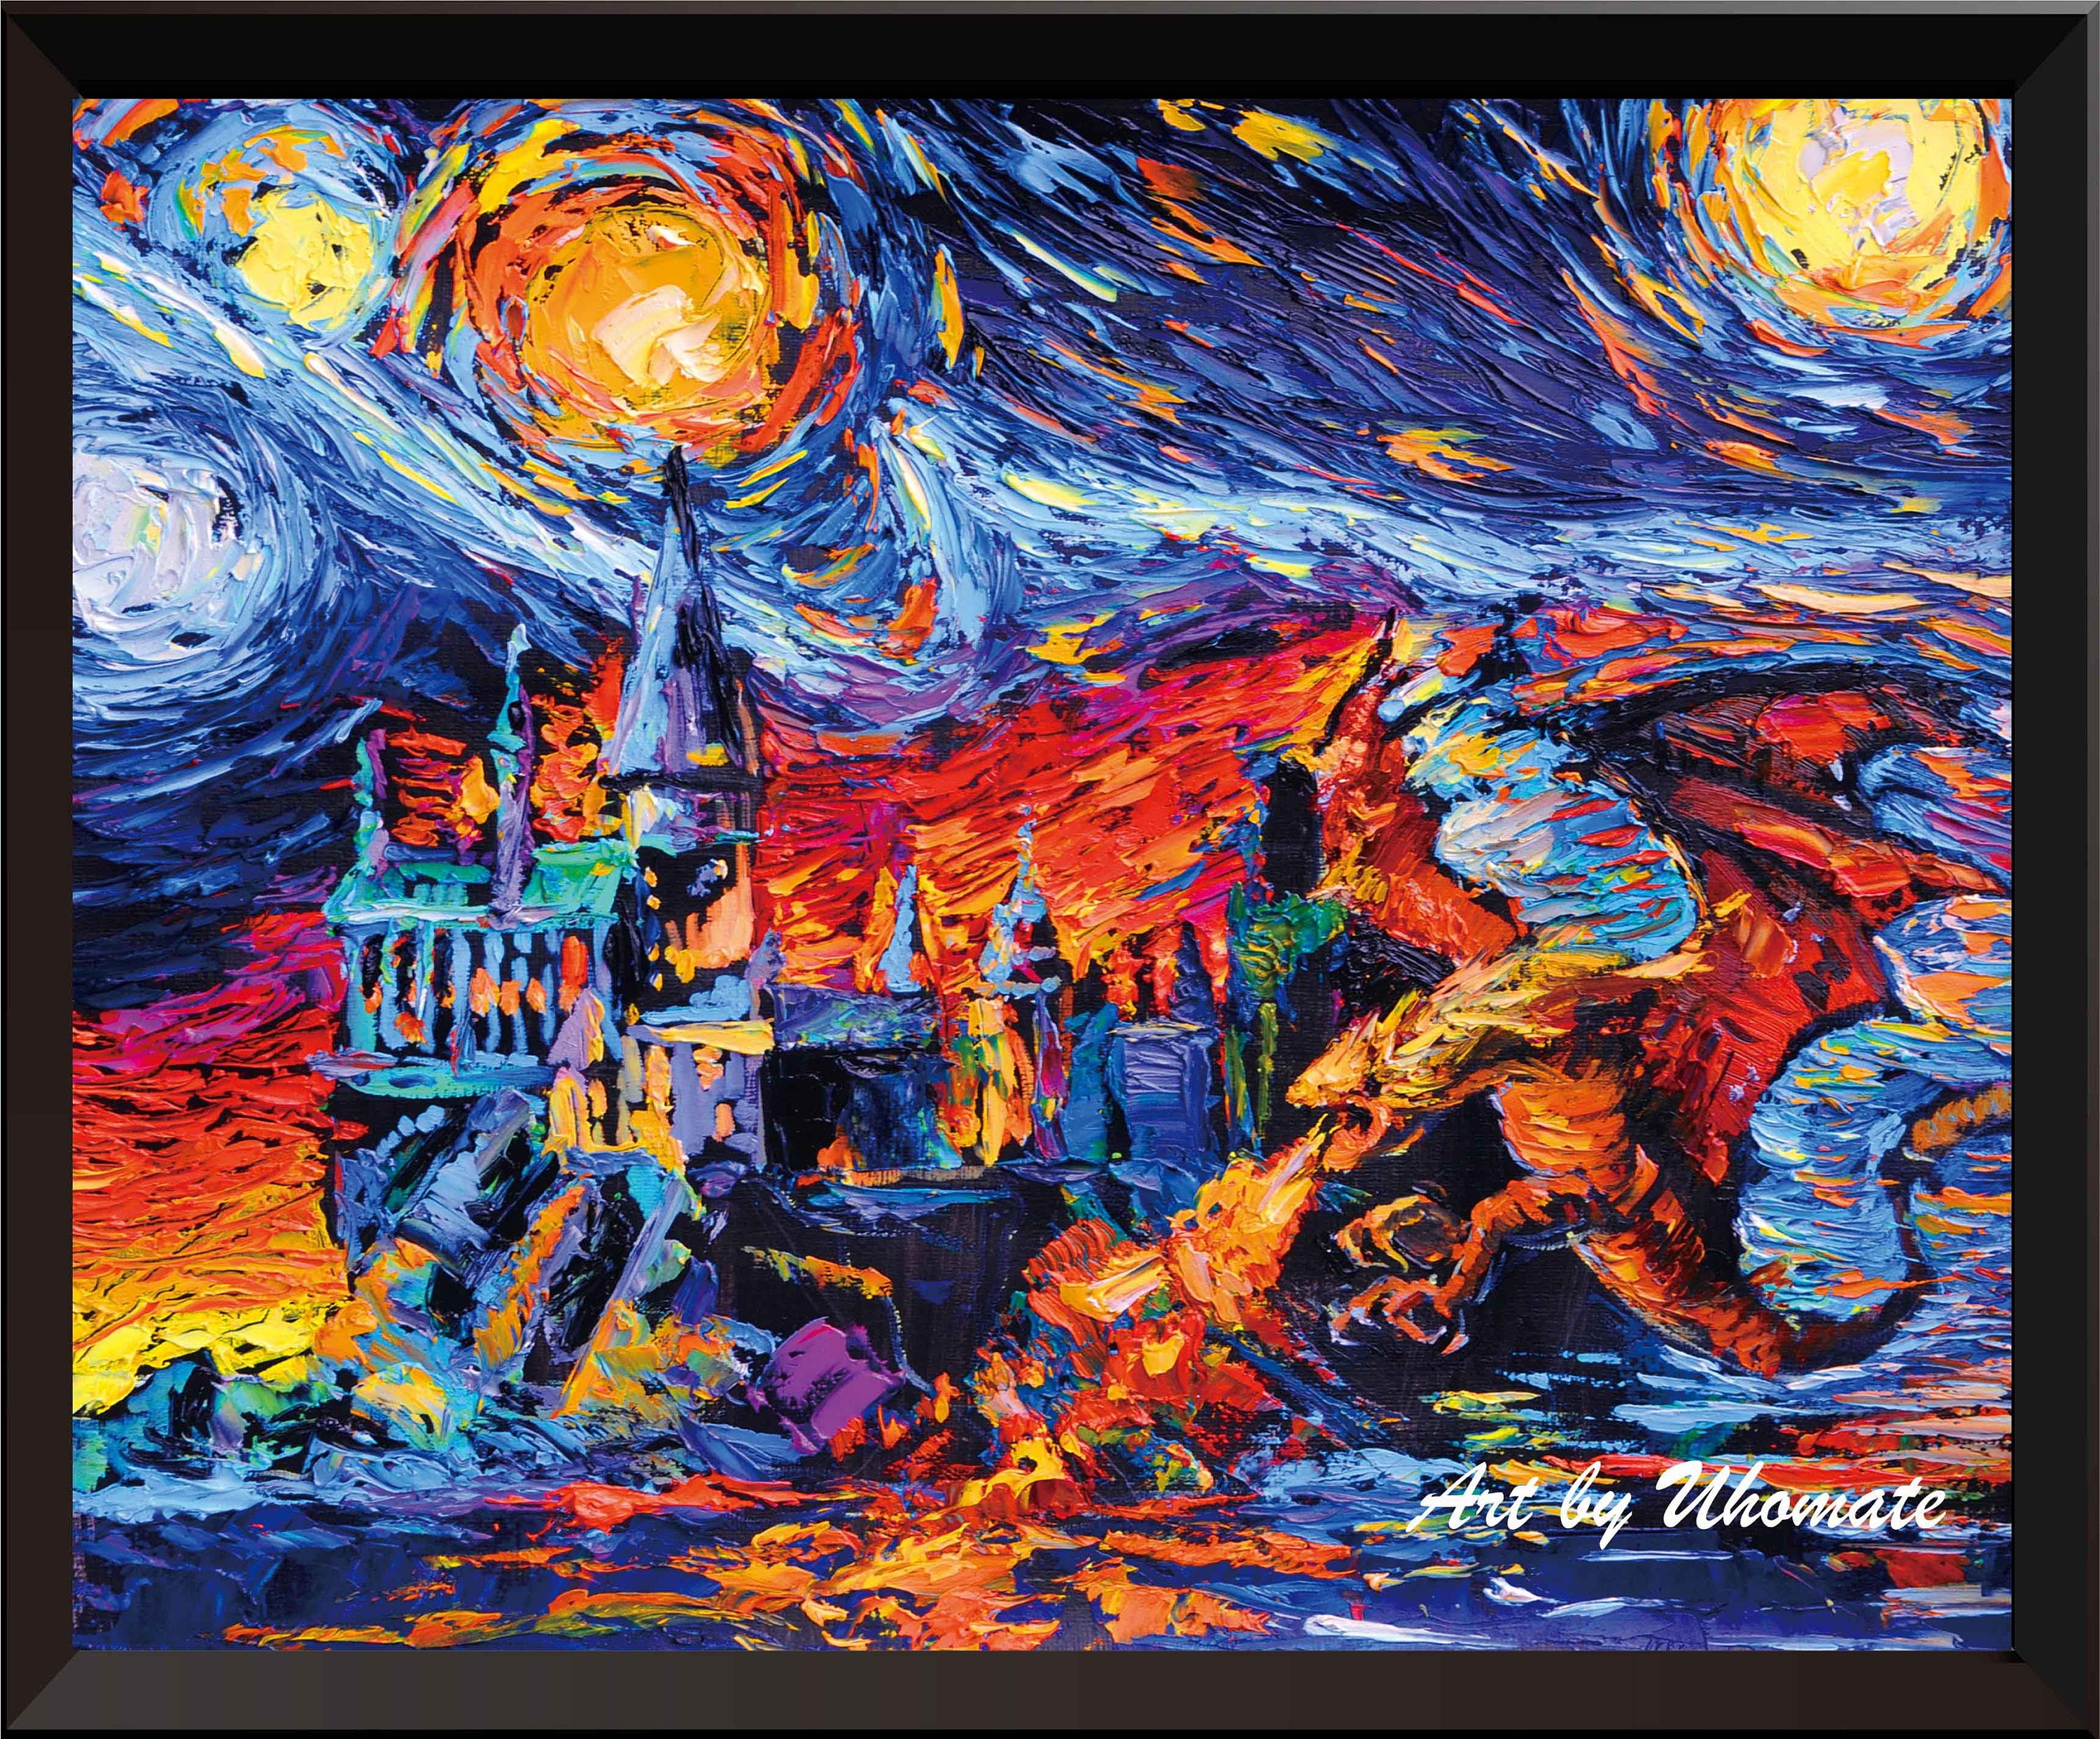 Vincent Van Gogh Starry Night Posters Harry Potter Inspired | Etsy